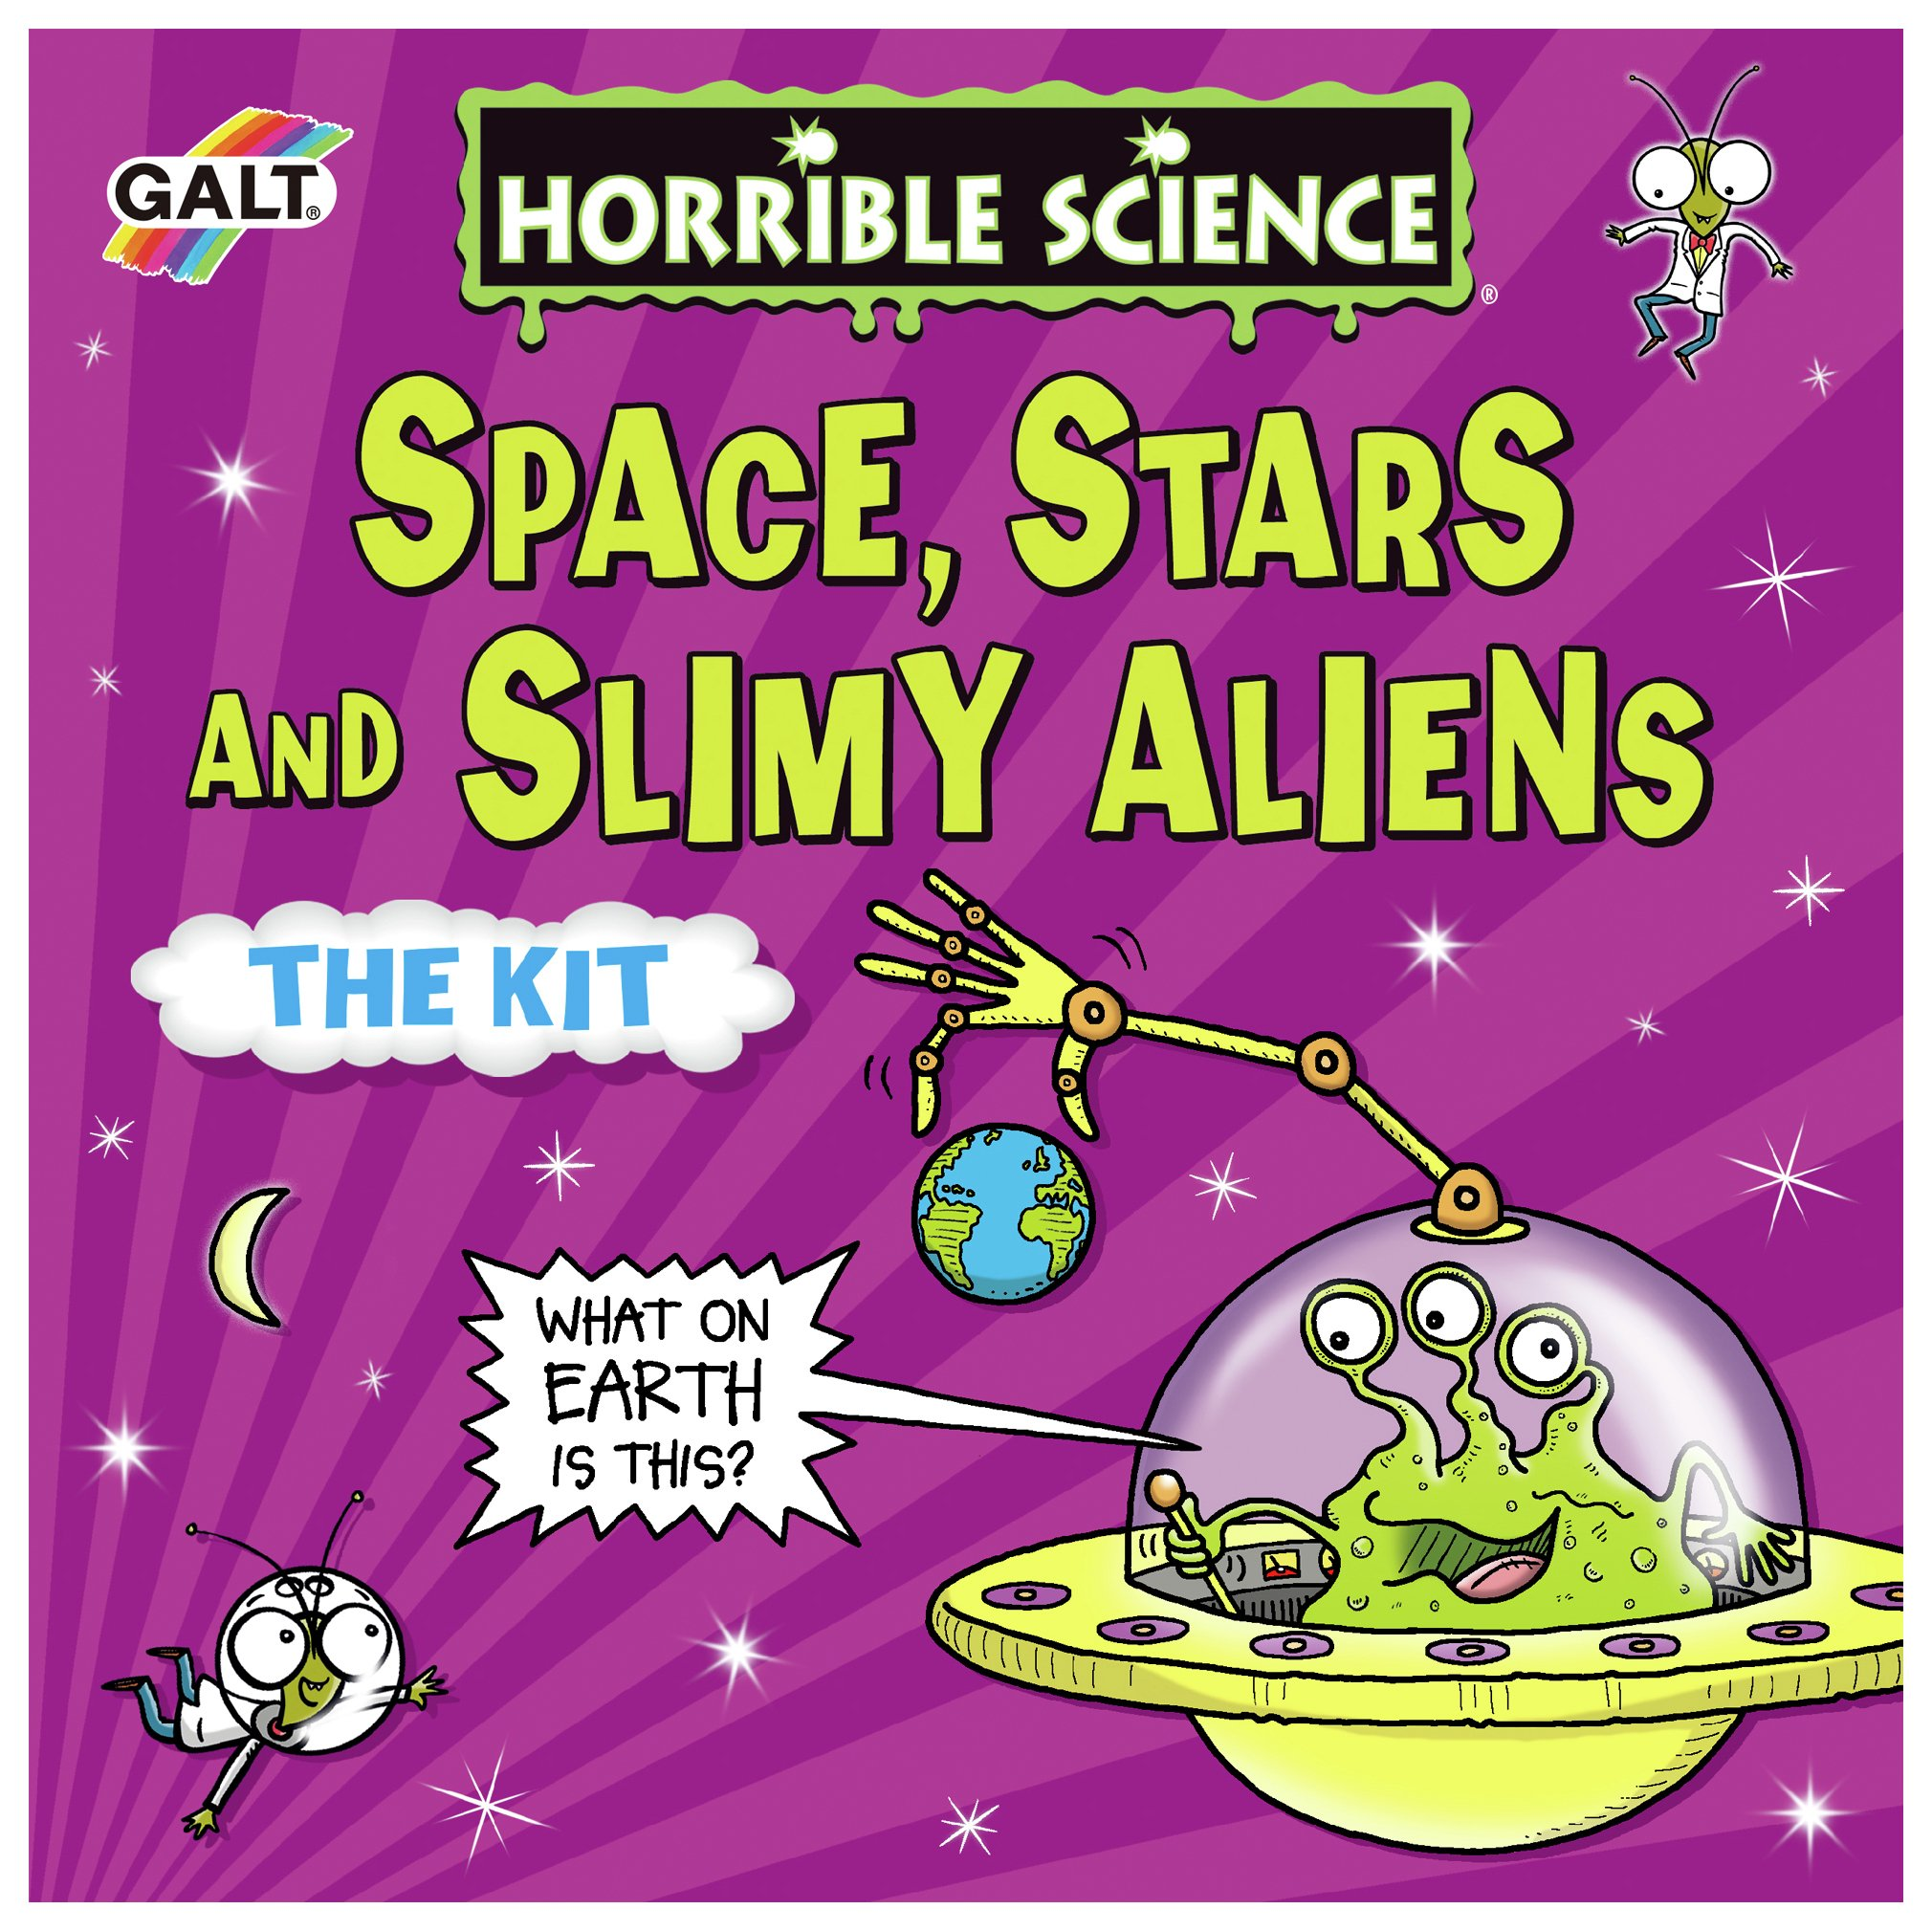 horrible-science-space-stars-slimy-aliens